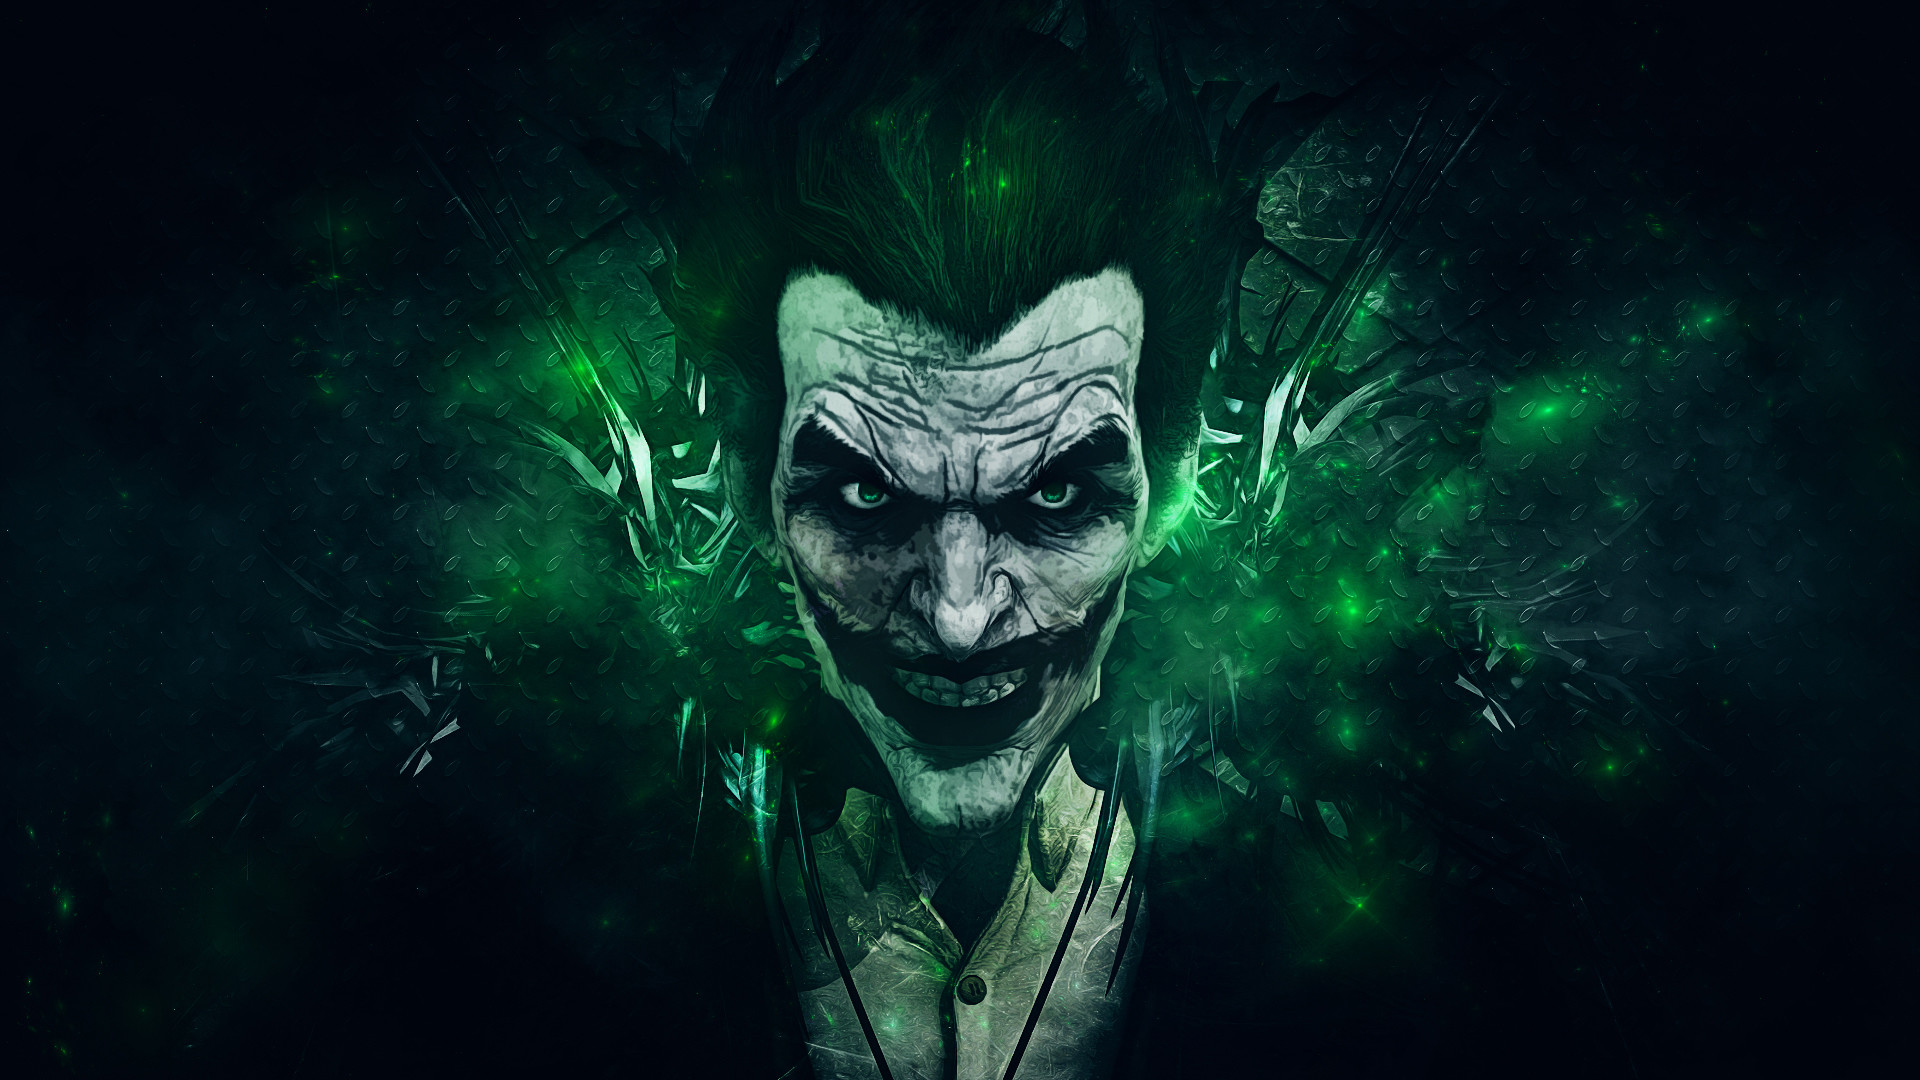 Joker Hd Wallpapers: Joker HD Wallpaper ·① WallpaperTag